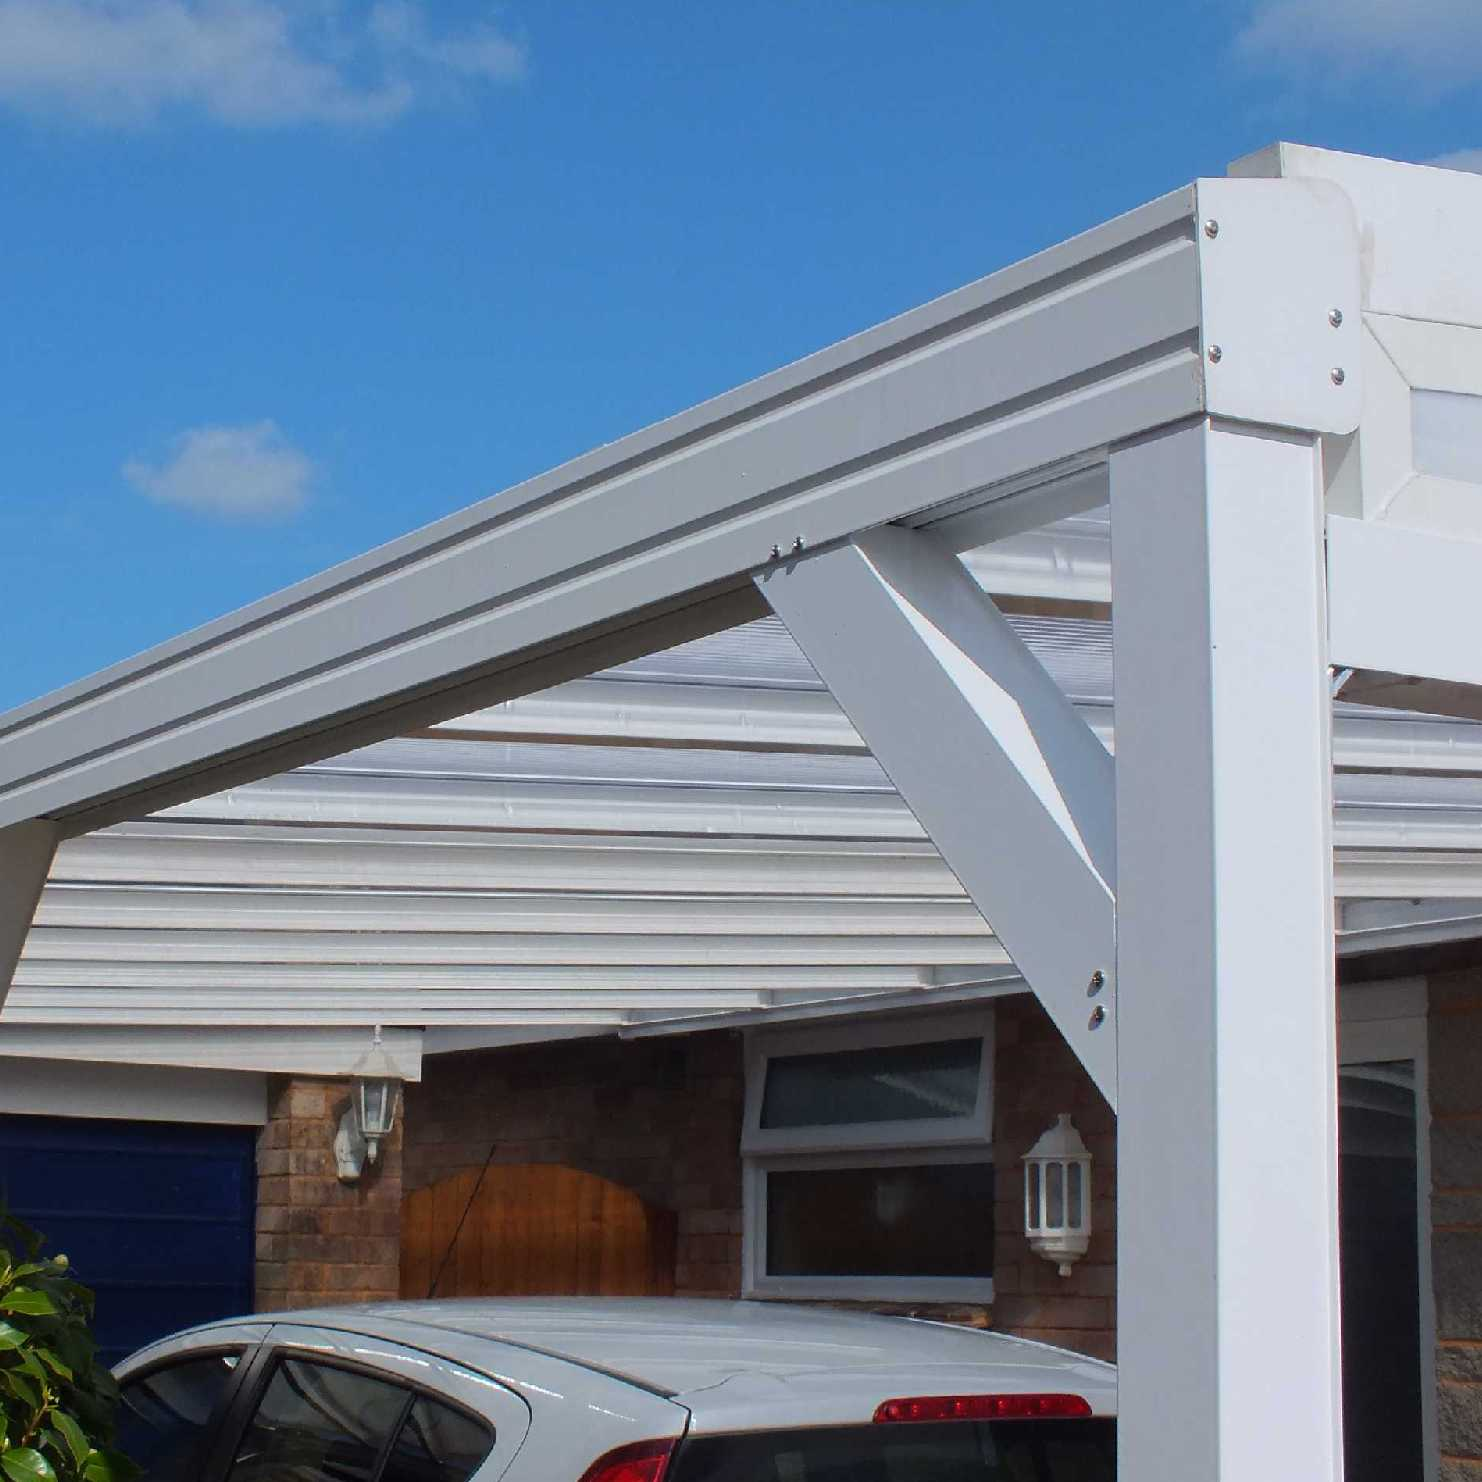 Buy Omega Smart White Lean-To Canopy with 16mm Polycarbonate Glazing - 4.2m (W) x 1.5m (P), (3) Supporting Posts online today